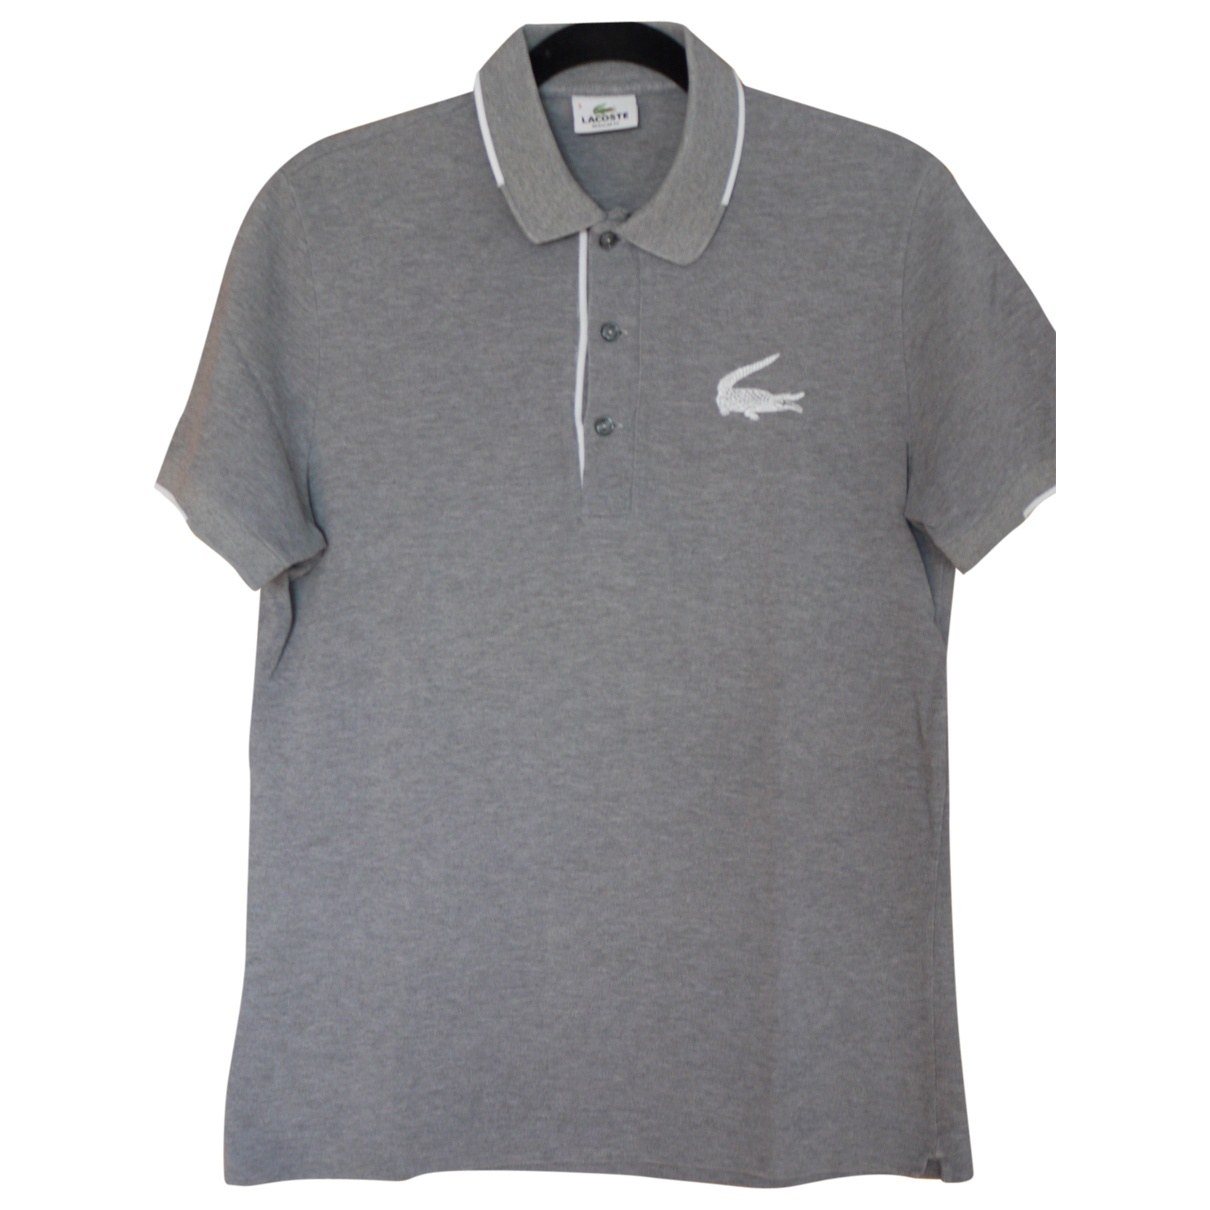 Lacoste \N Grey Cotton Polo shirts for Men 3 0 - 6